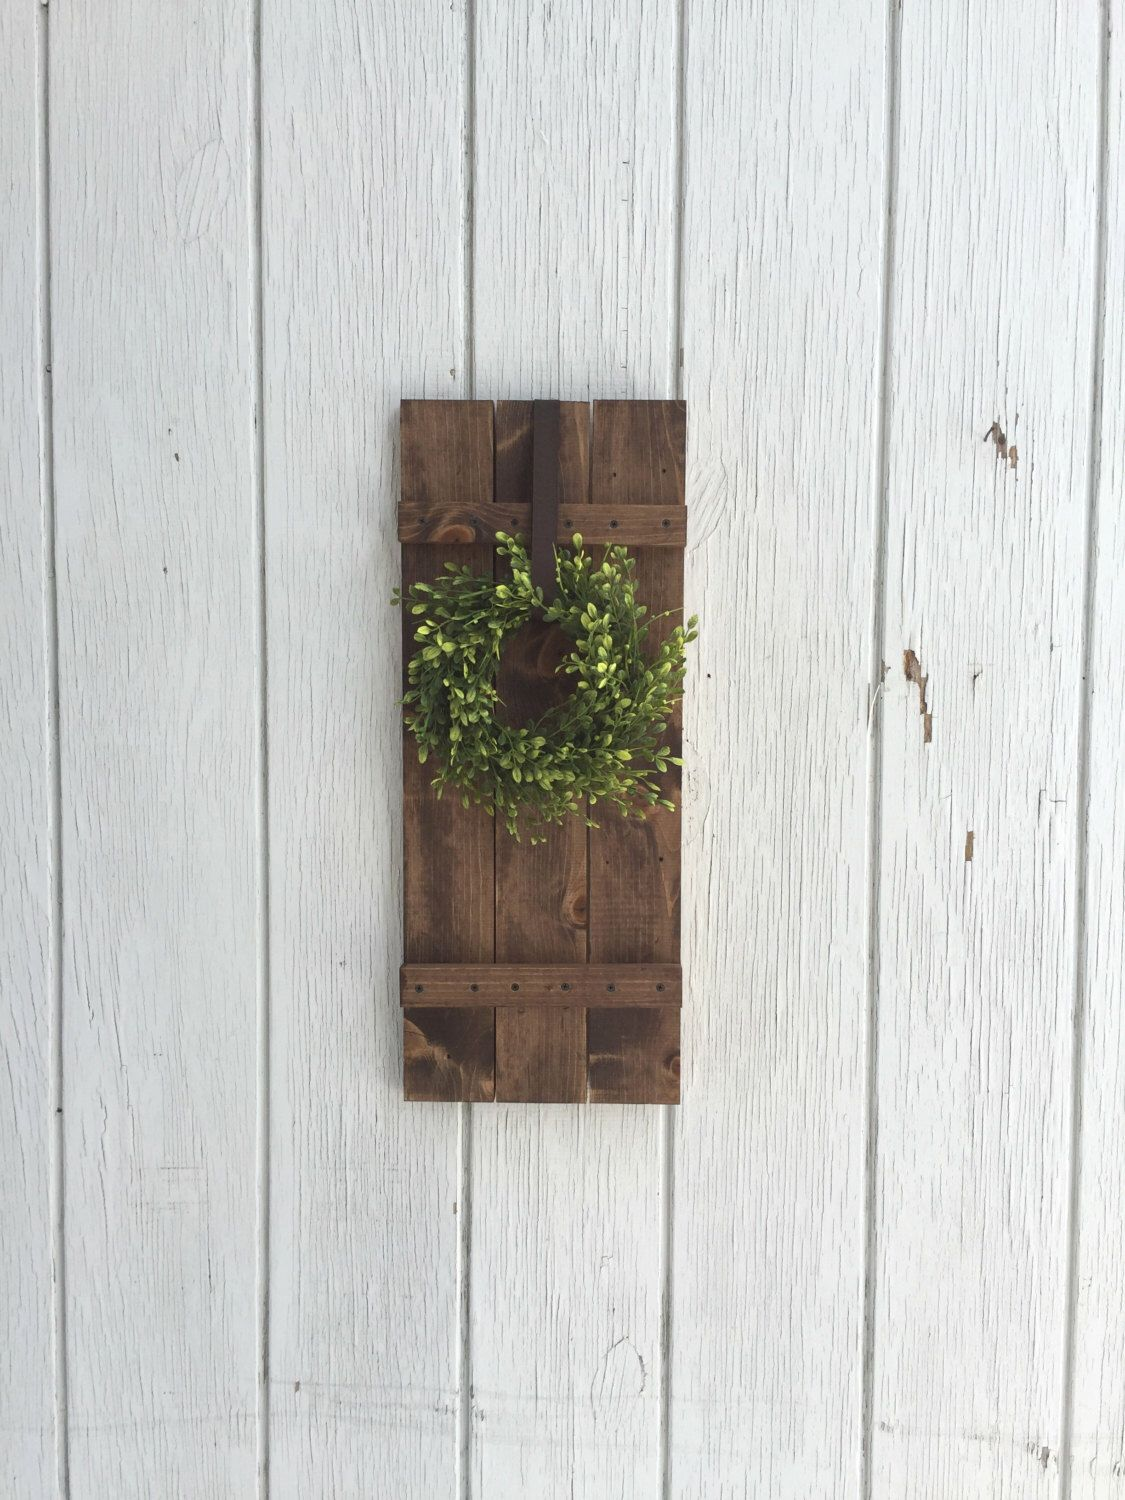 Farmhouse Shutter Wall Decor Rustic By KeywheatKreations On Etsy